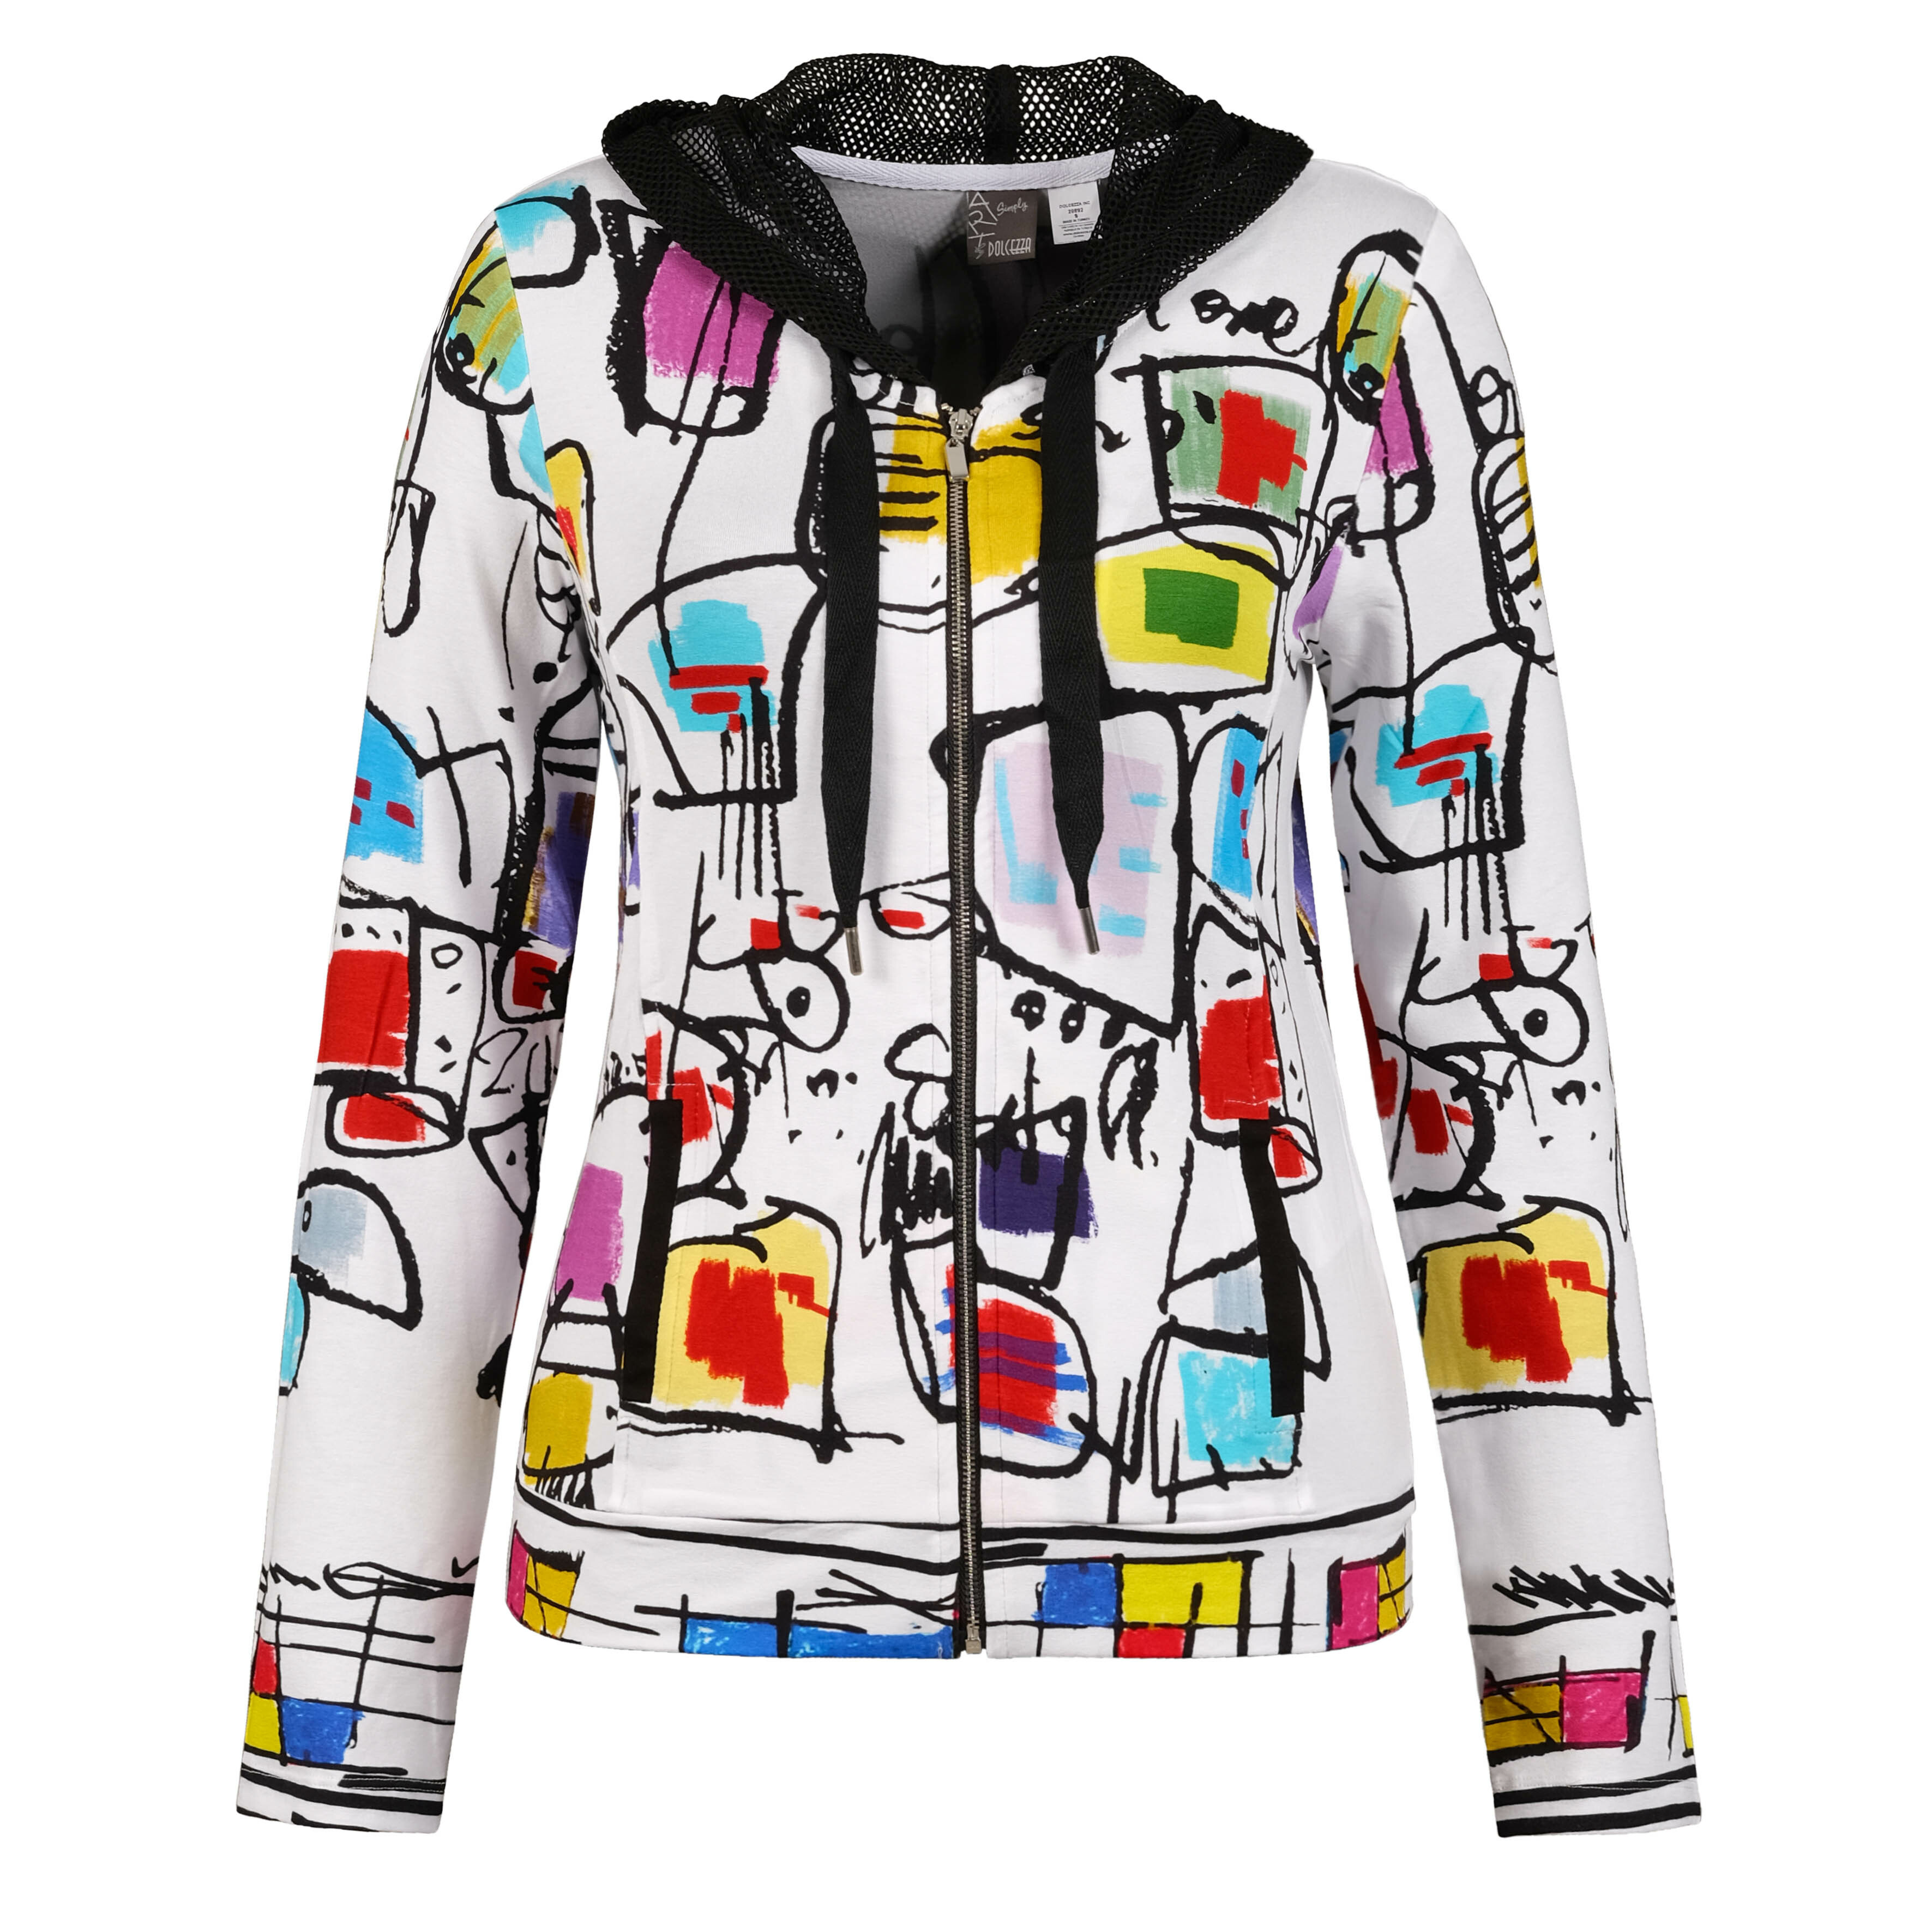 Simply Art Dolcezza: Etagere & Miss Eze Printed Hoodie Jacket (2 Left!) Dolcezza_SimplyArt_20692